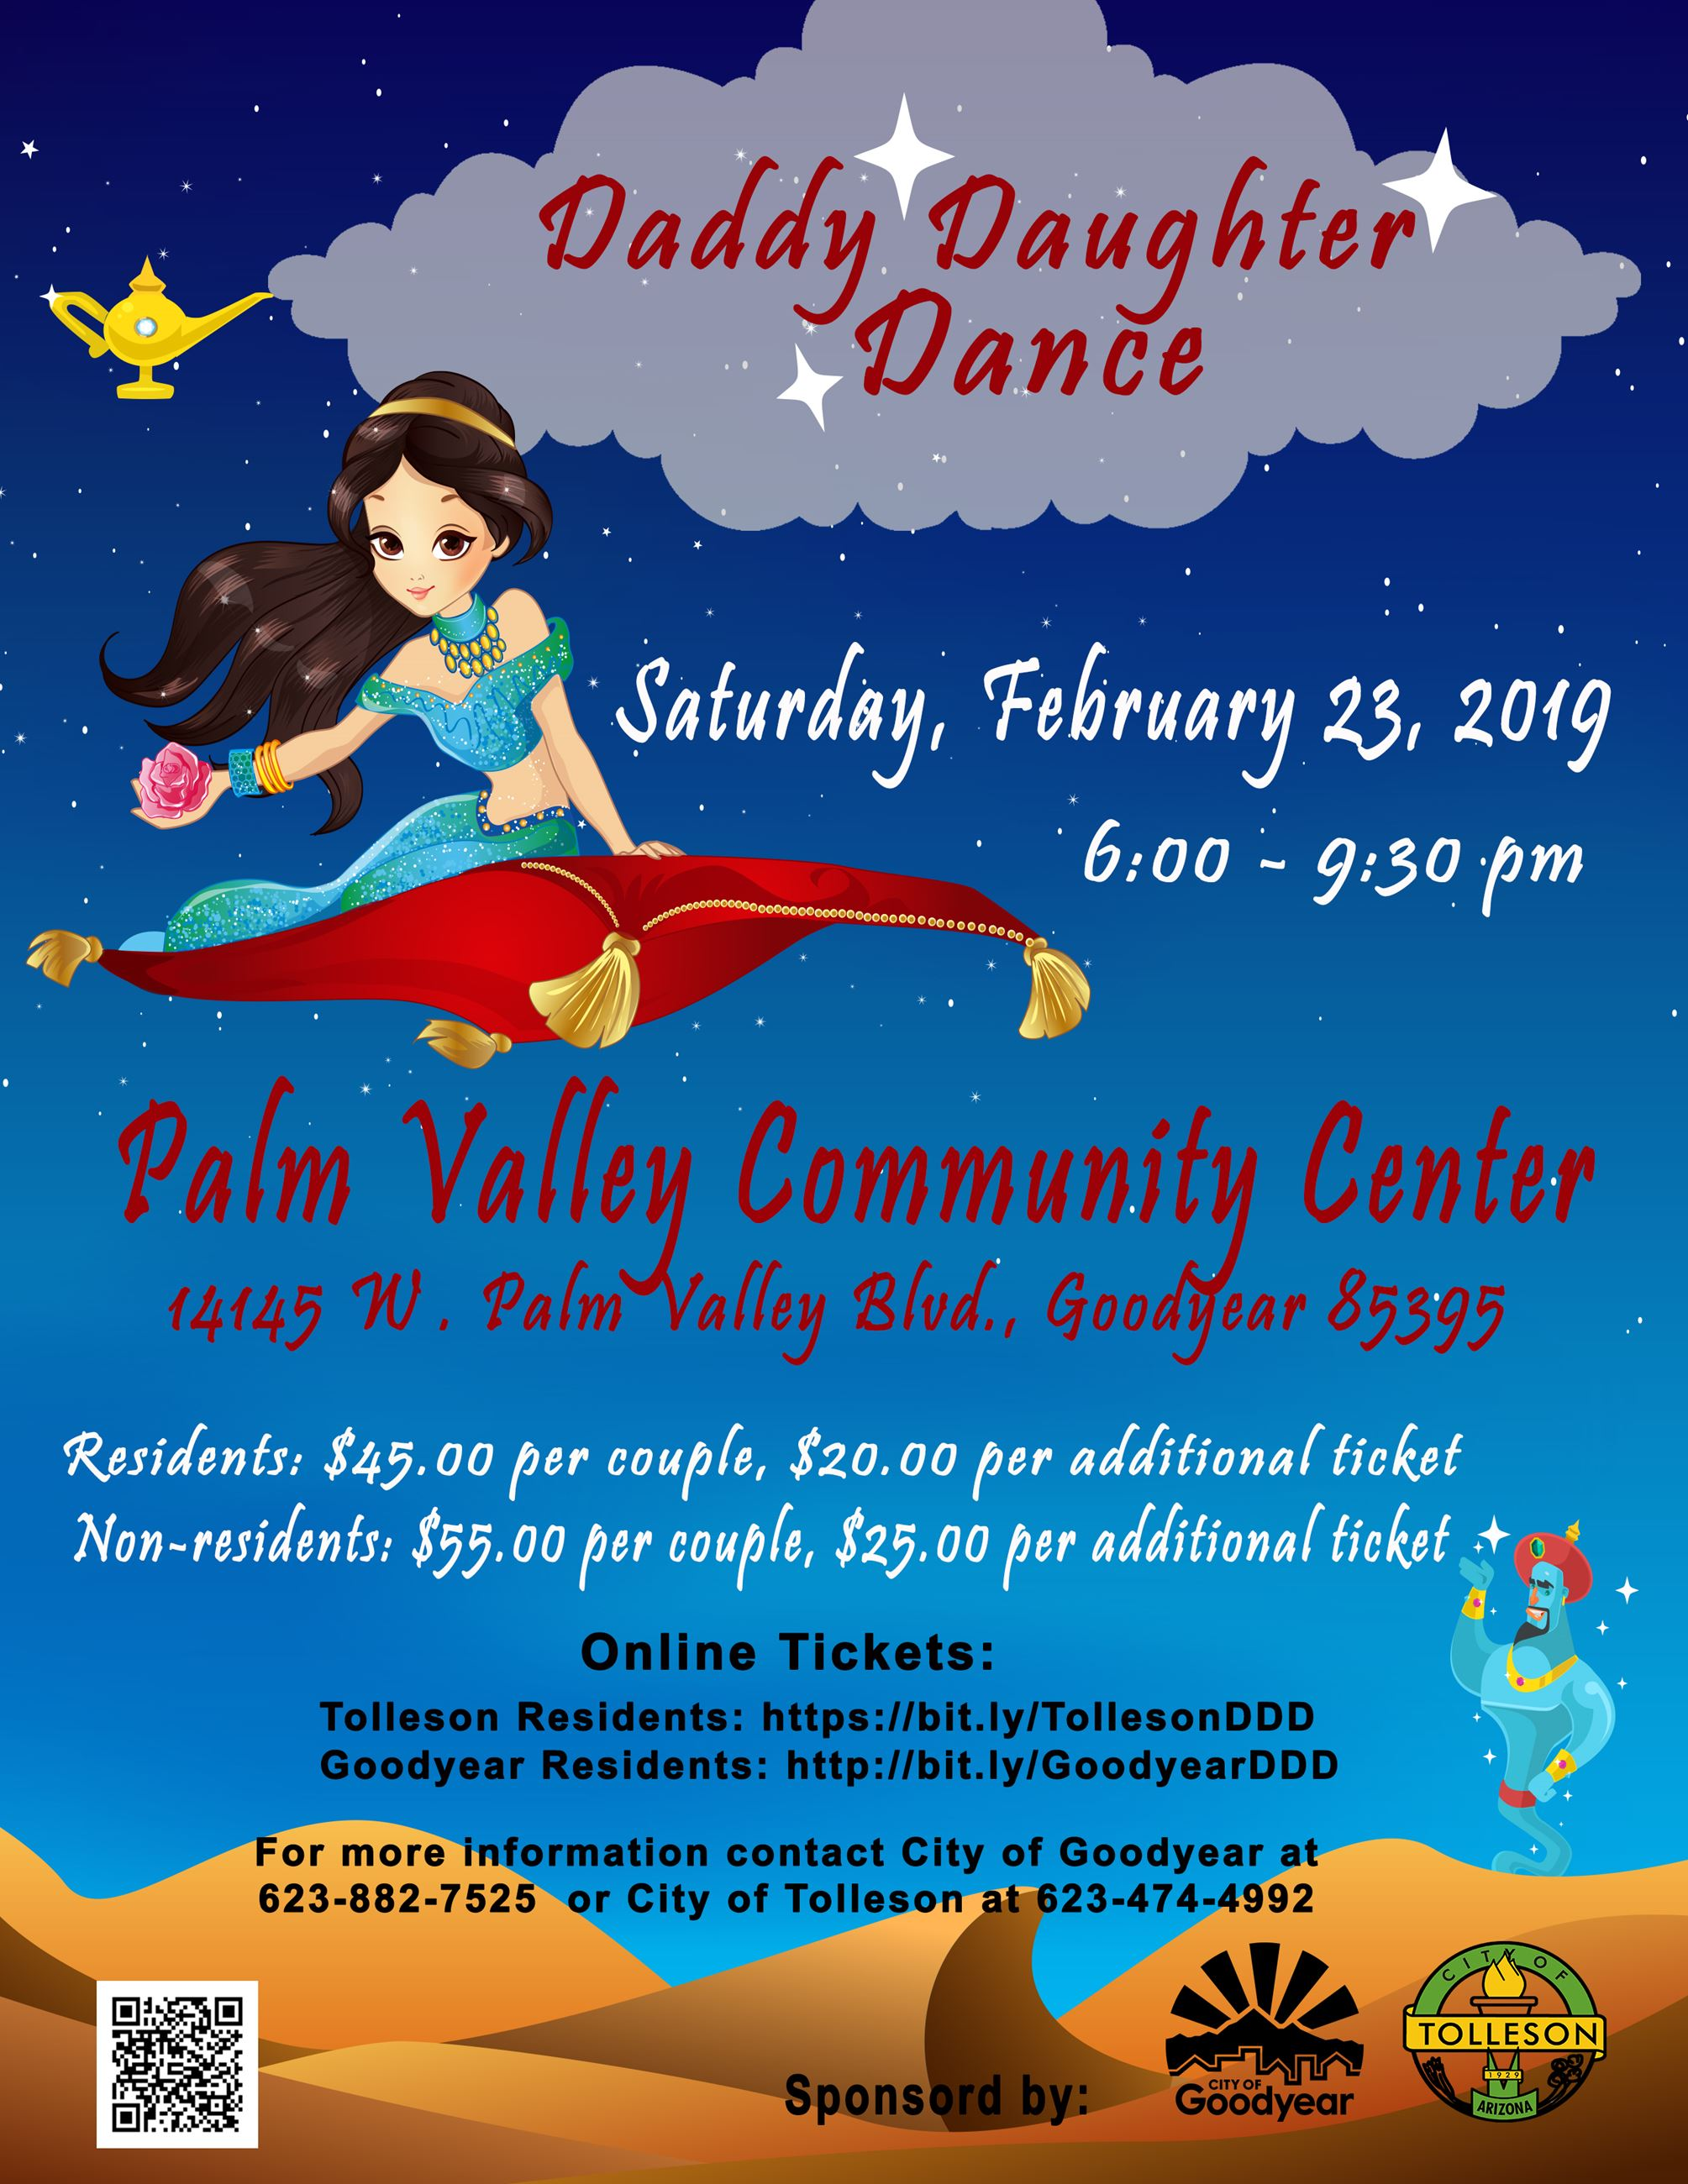 Daddy Daughter Dance Flyer 2019